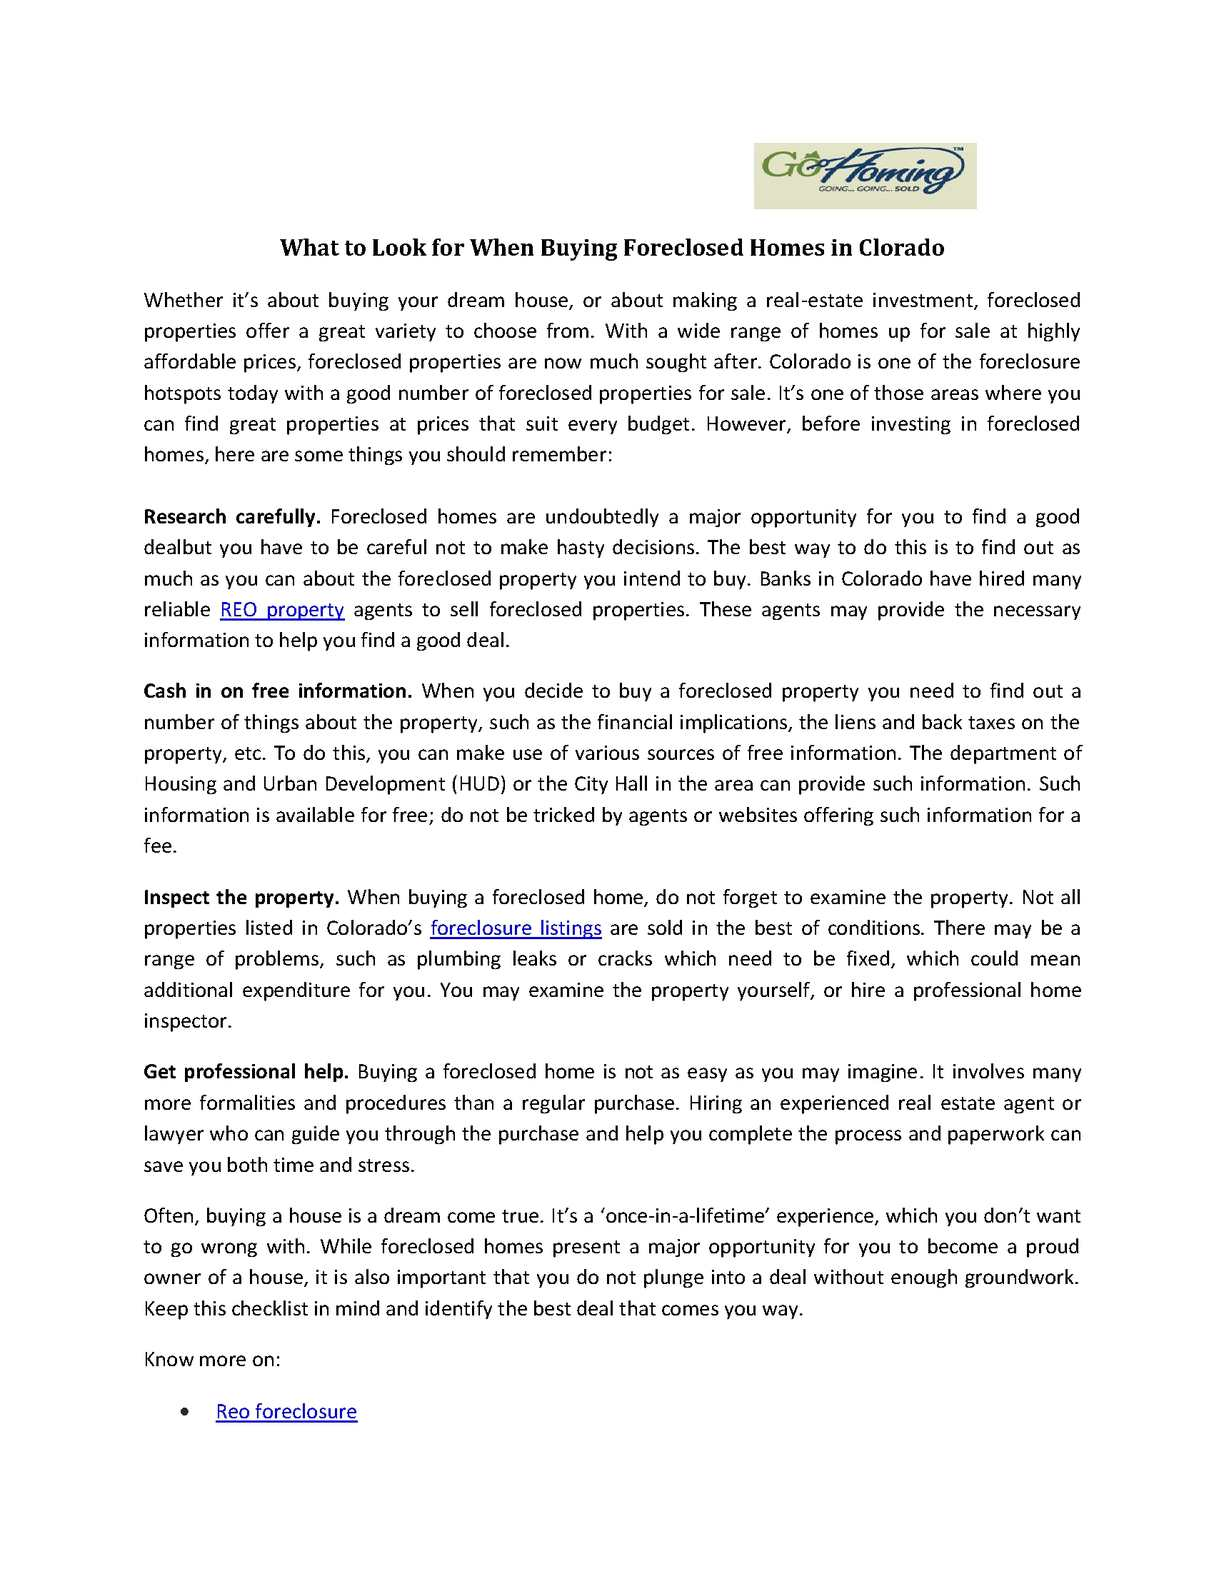 Calaméo - What to Look for When Buying Foreclosed Homes in Clorado